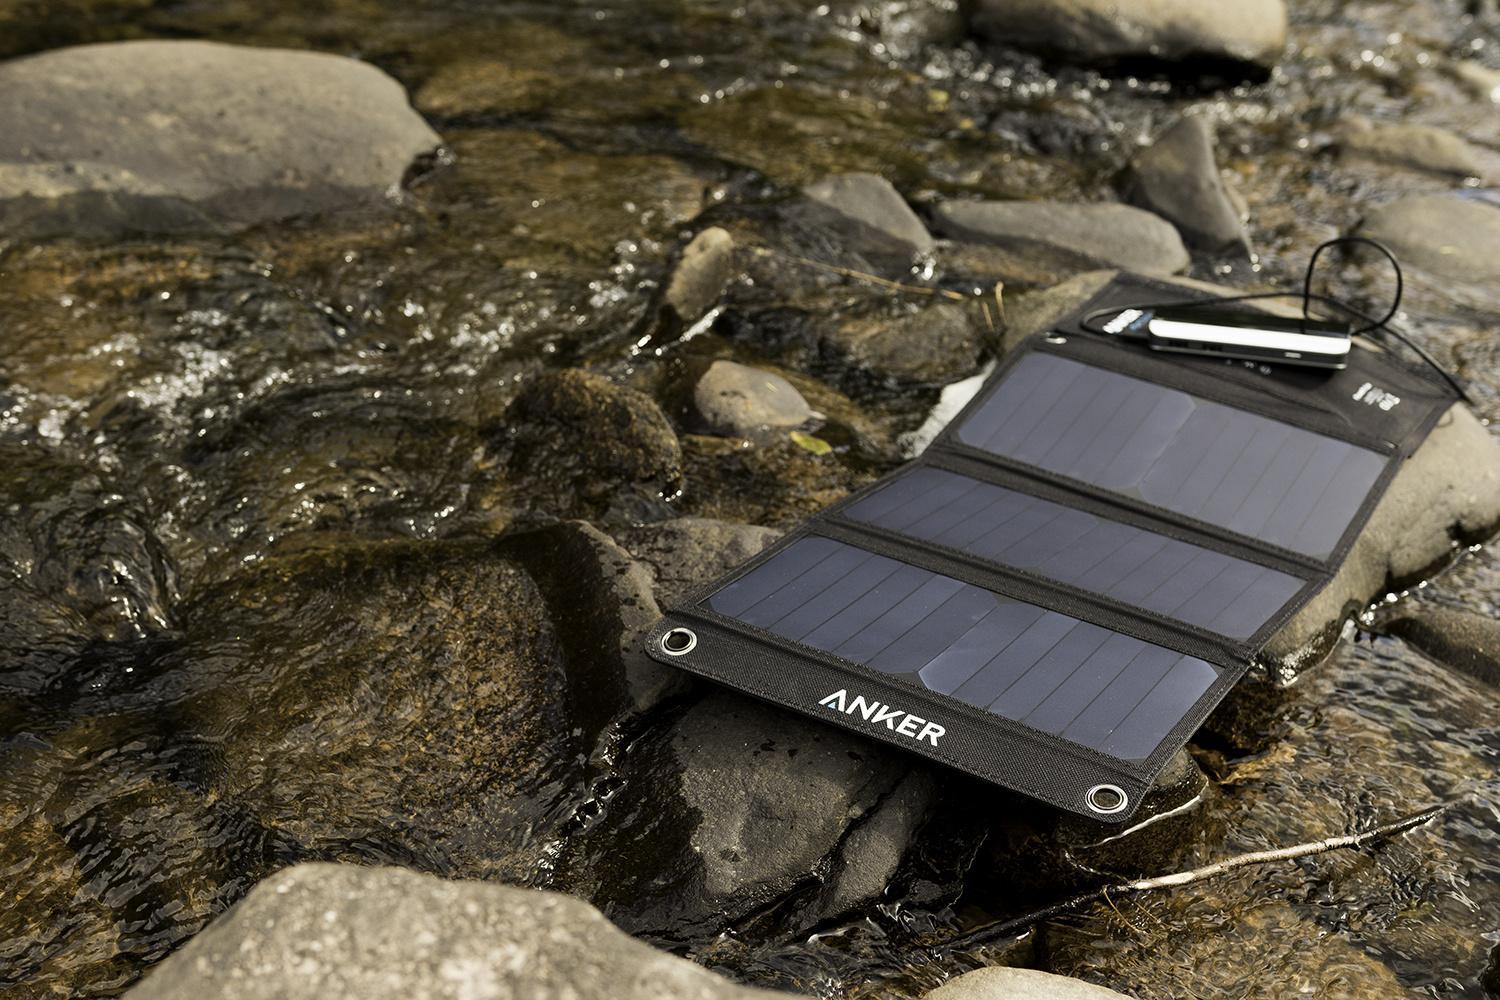 Fstoppers Reviews The Anker 21w Powerport Solar Charger There Have Been Plenty Of Companies Selling Panel Charging Kits For Several Years Now But Often If Youre Not Putting Together A Large Expedition Or